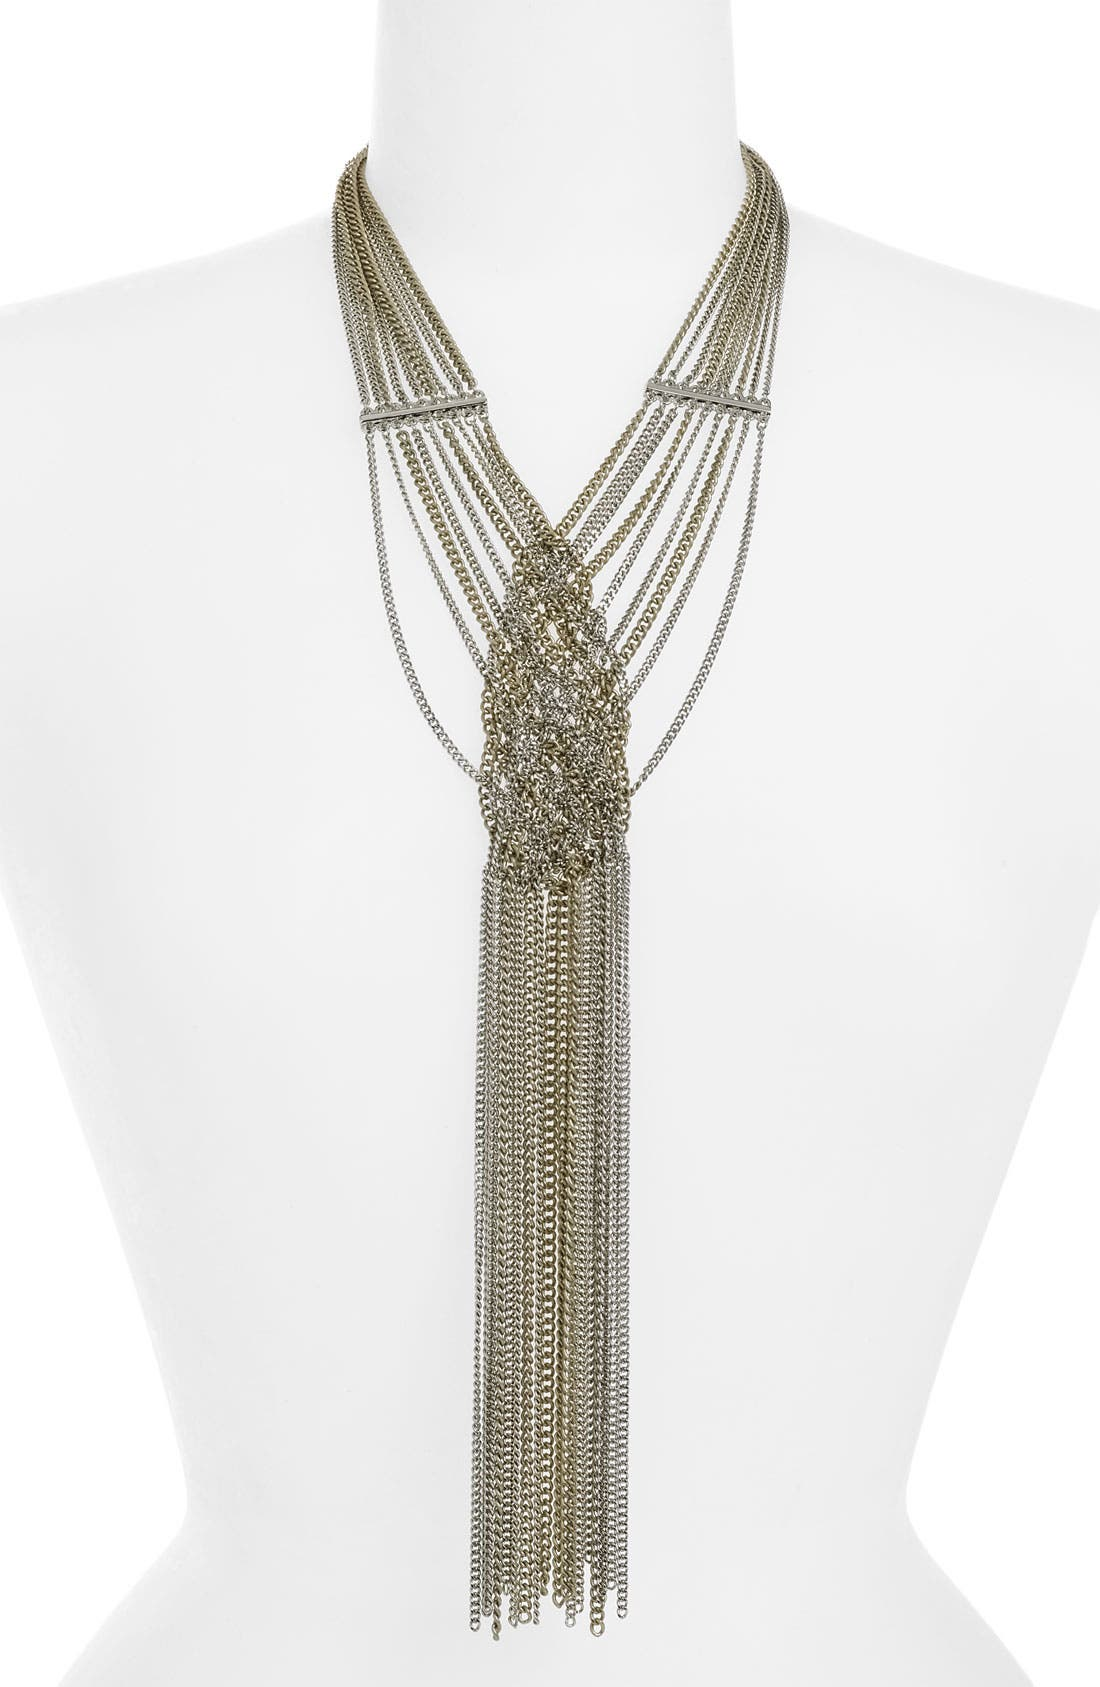 BCBGENERATION 'Adele' Multi Chain Y-Necklace, Main, color, 041